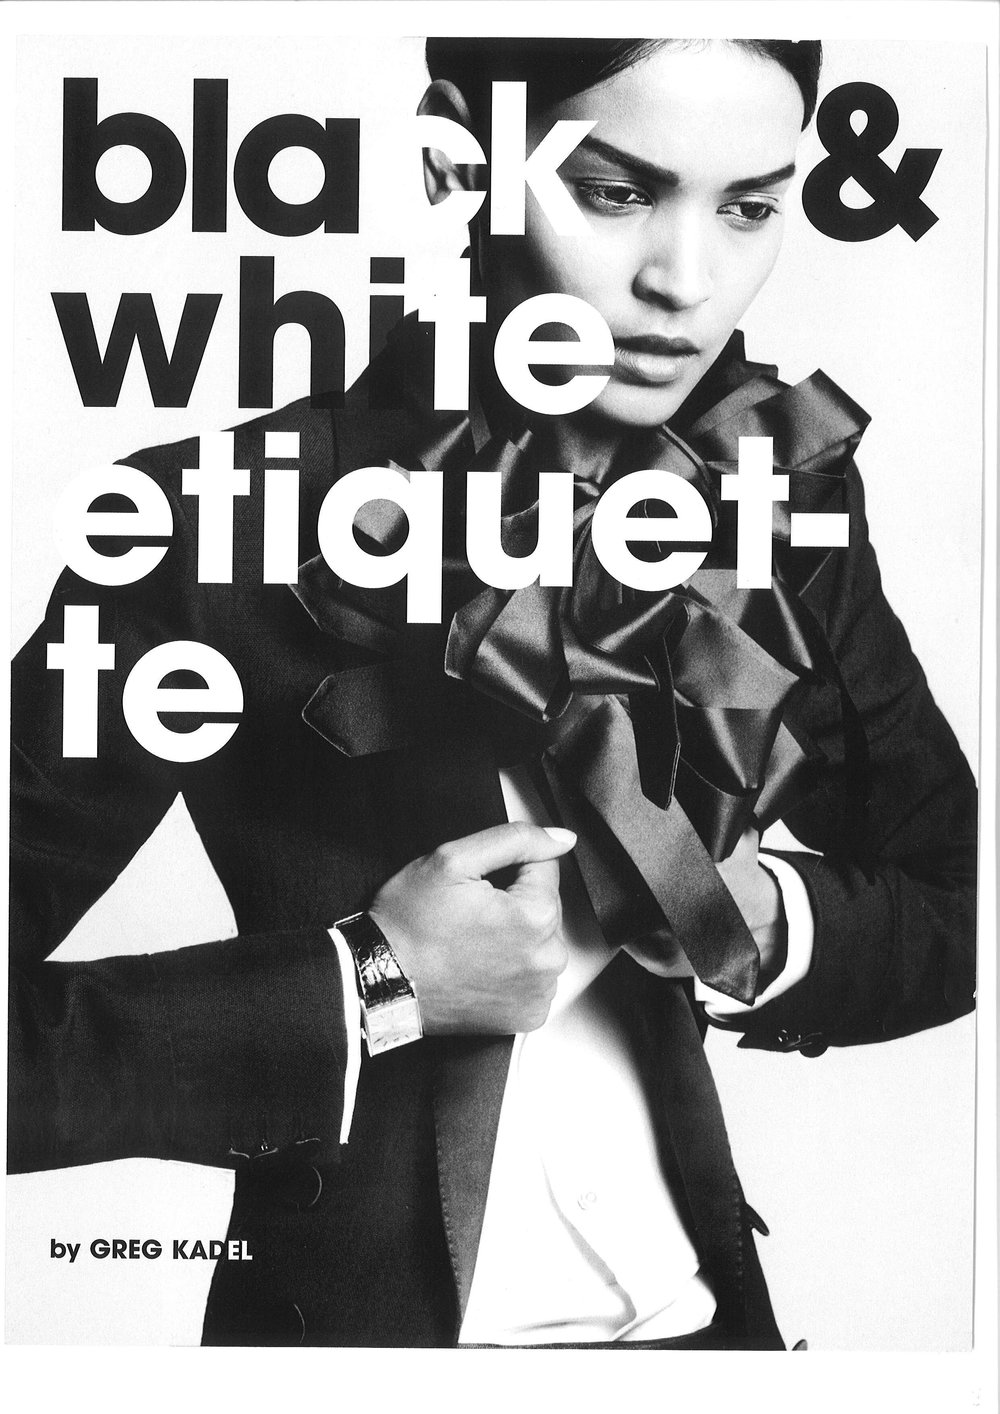 Giovanna-Battaglia-1-Black-and-White-Etiquette-L'uomo-Vogue-Greg-Kadel.jpg